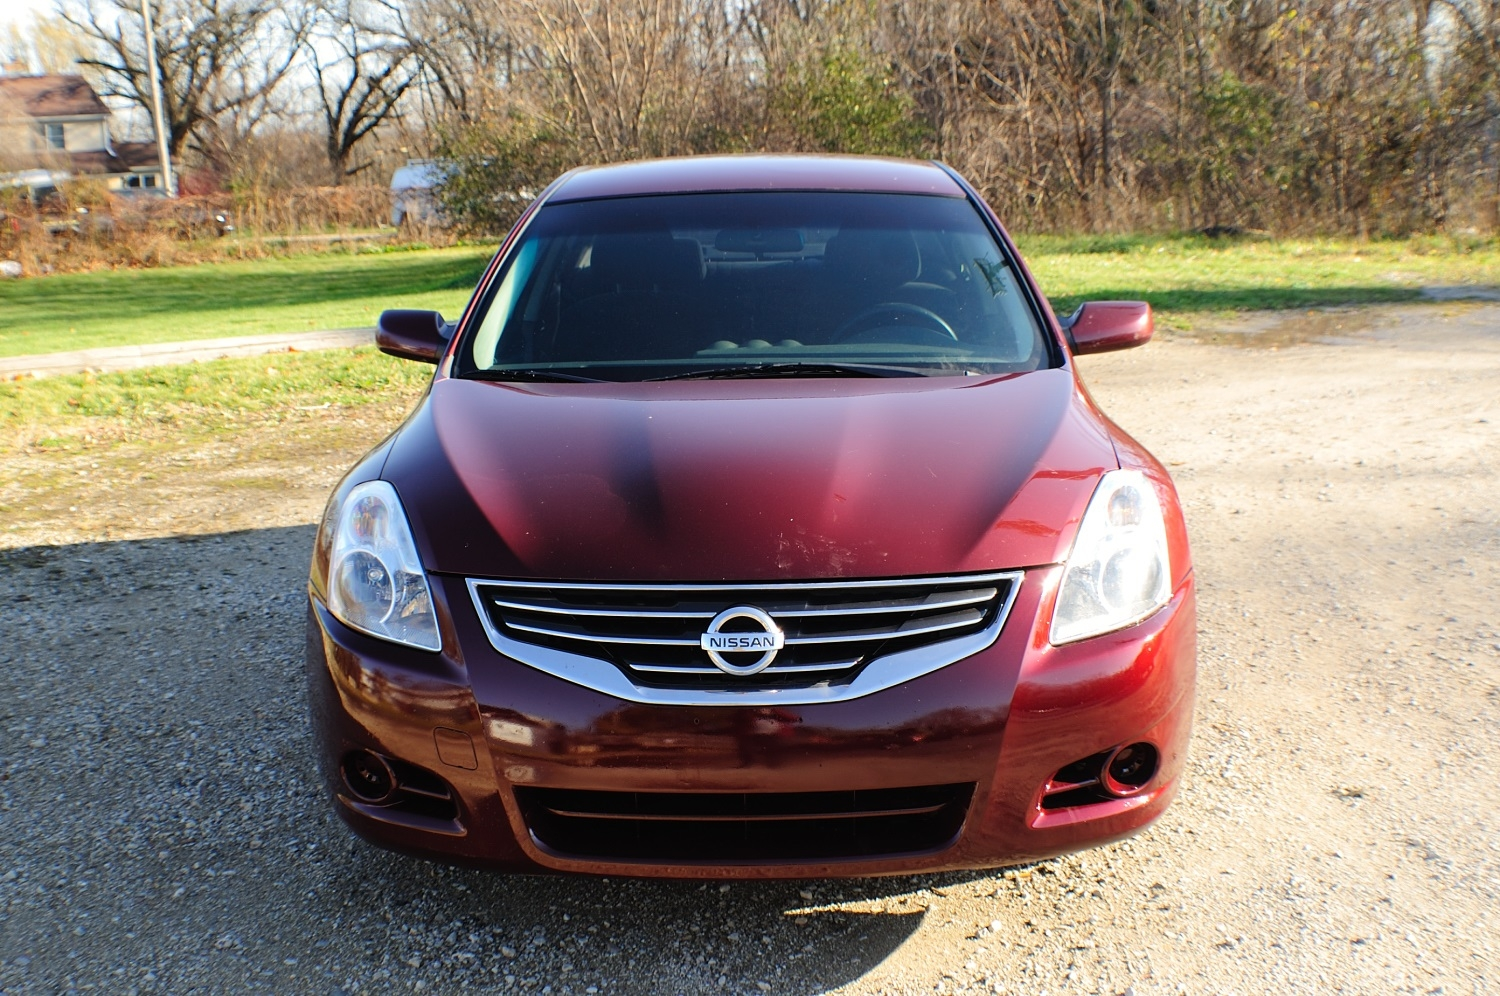 2010 Nissan Altima S Red Used Car Sedan Sale Gurnee Kenosha Mchenry Chicago Illinois